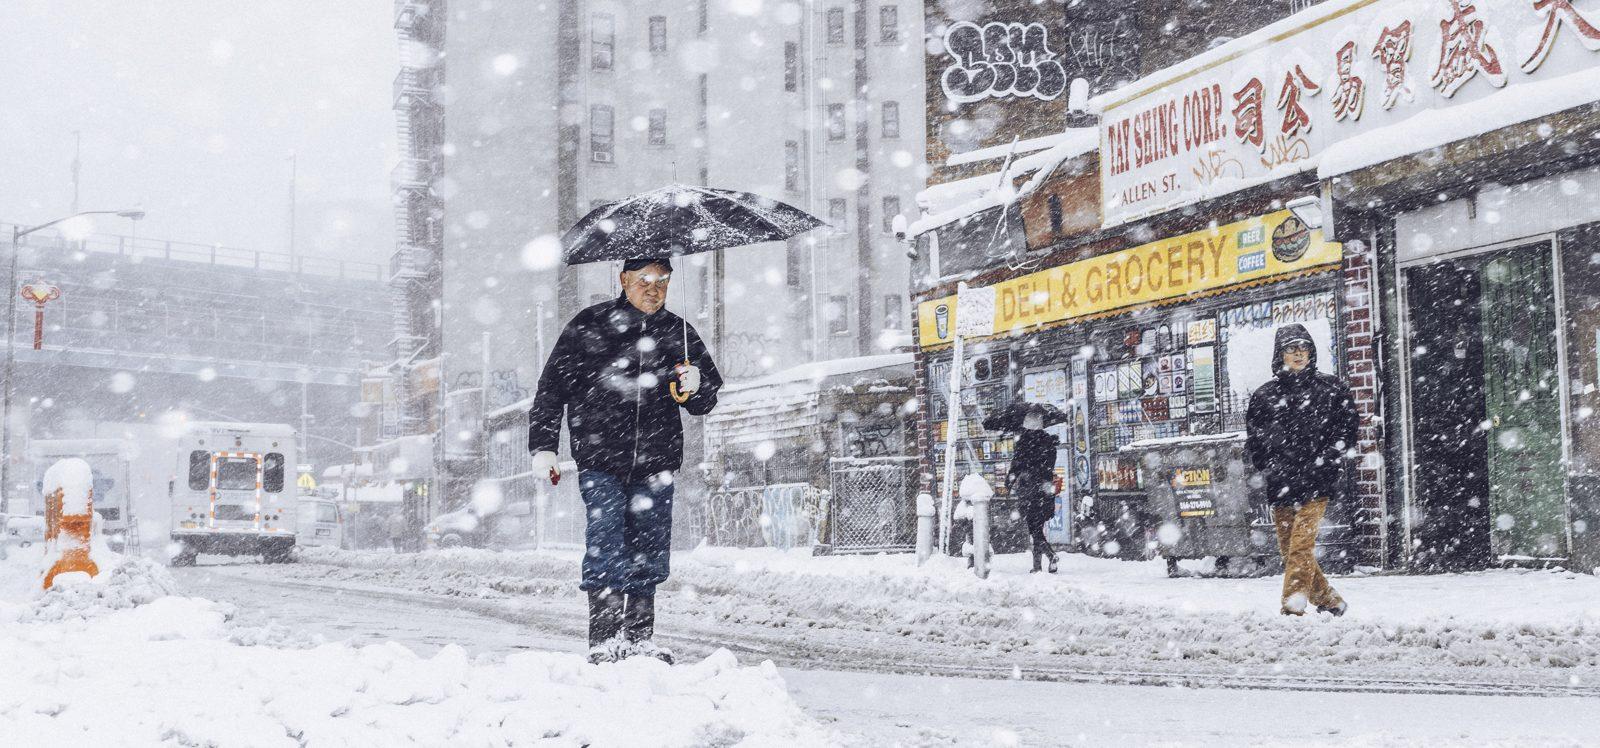 Weather Advisory: All NYC School Buildings Closed on February 2